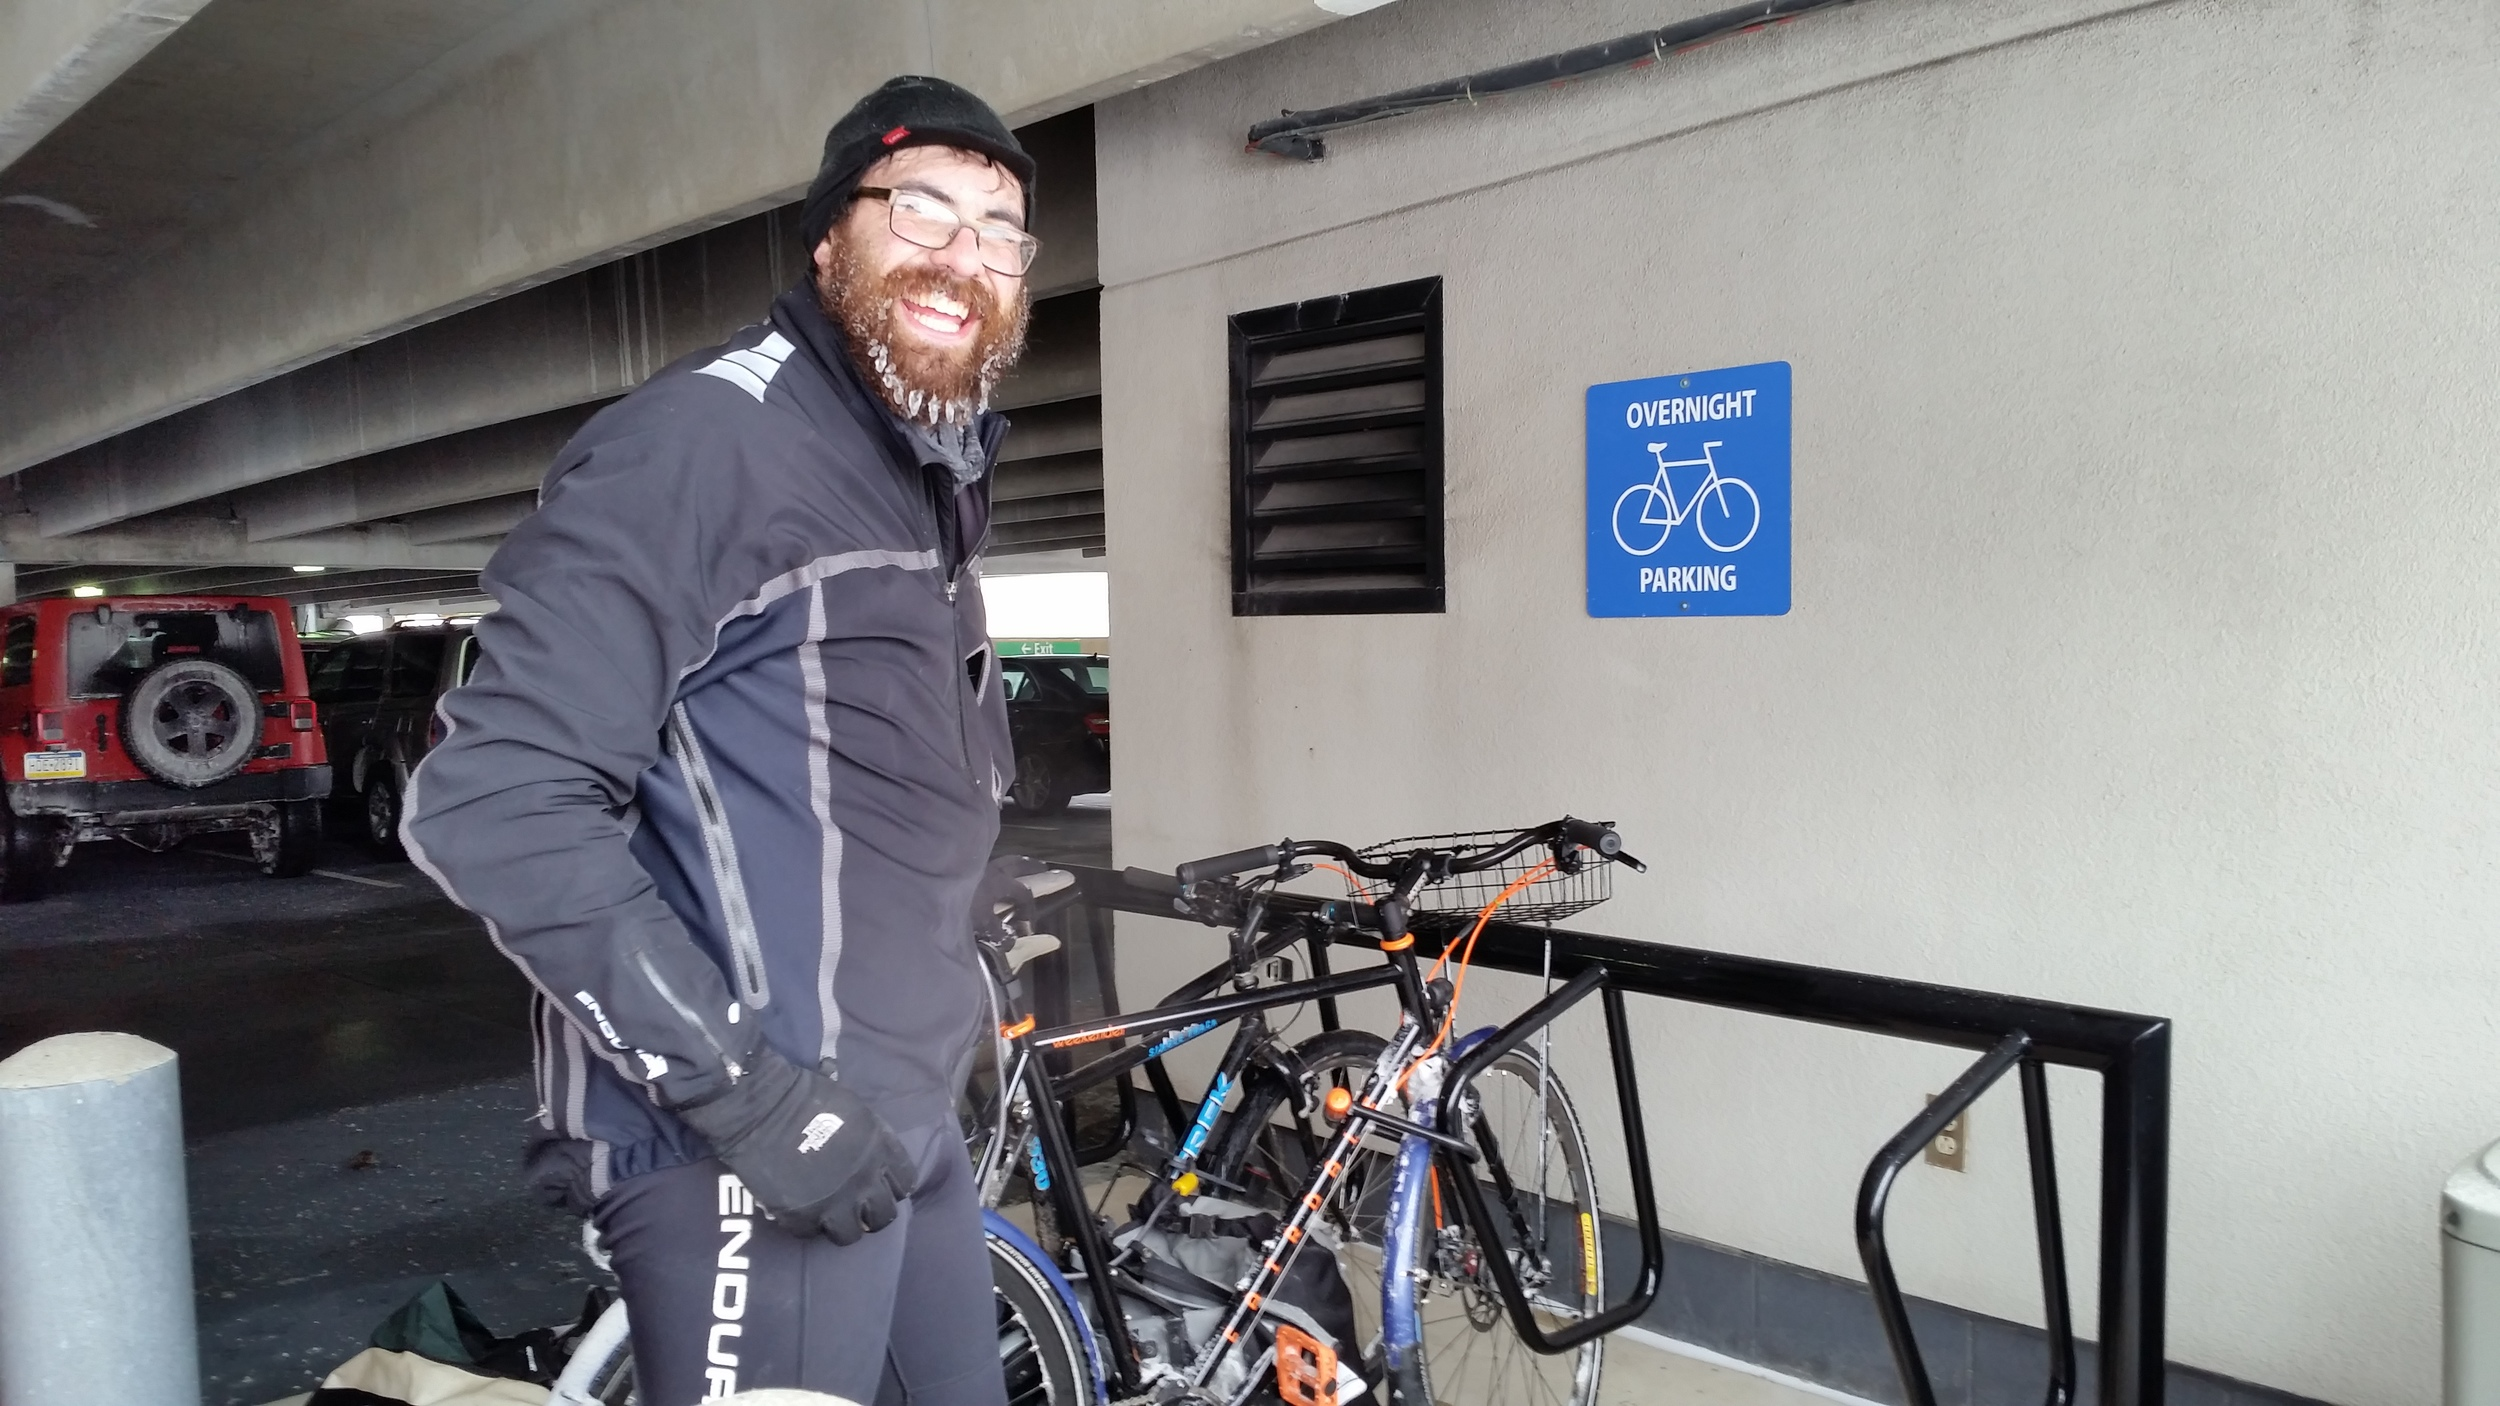 Awesome Airport bike parking. Partially covered, our bikes made it thru a cold and snowy week, no problem. We used one U-lock, one folding lock, and a cable lock to grab our saddles, helmets, and empty panniers.